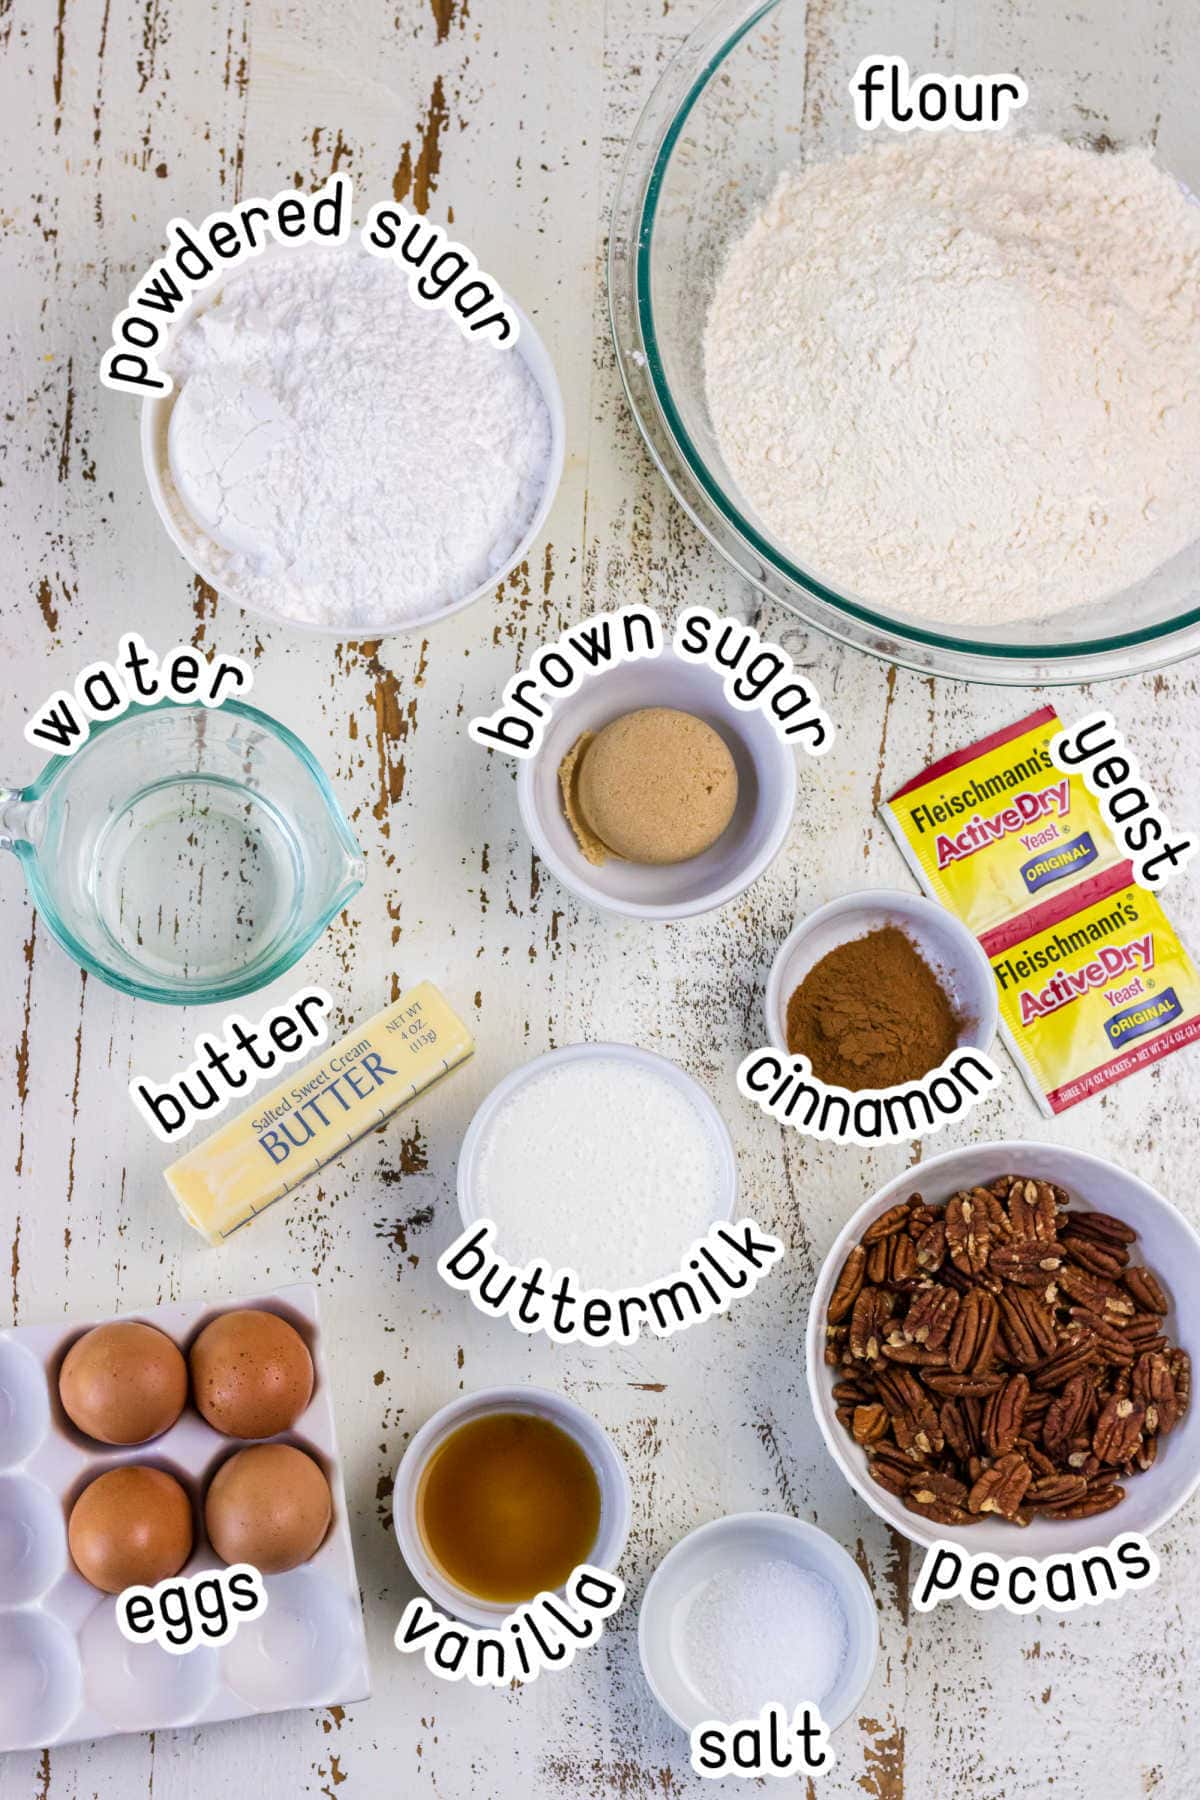 Labeled ingredients for this recipe.